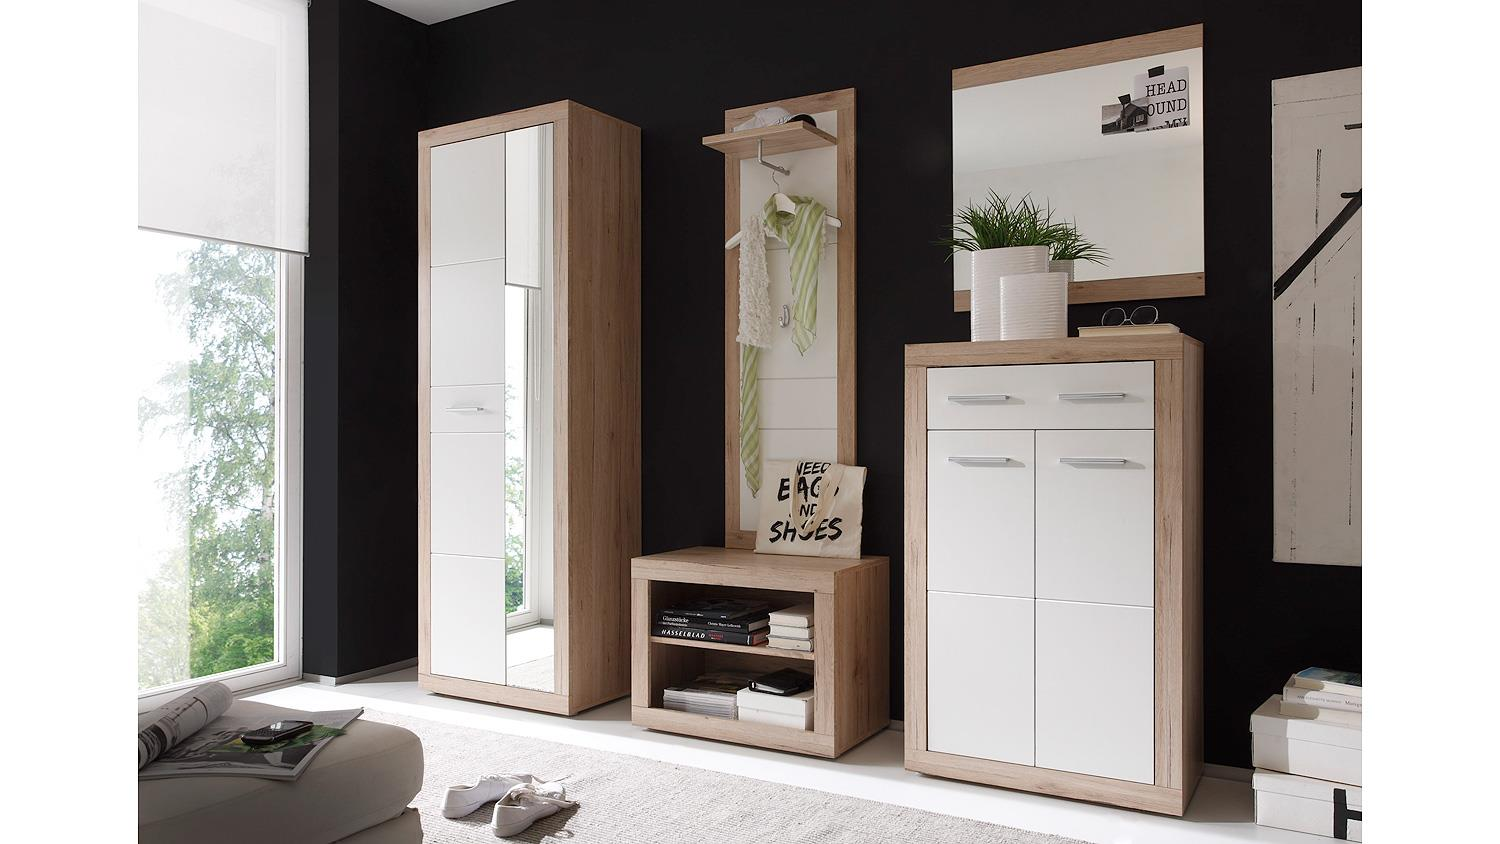 bank can can 5 sitzbank garderobe in sonoma eiche. Black Bedroom Furniture Sets. Home Design Ideas